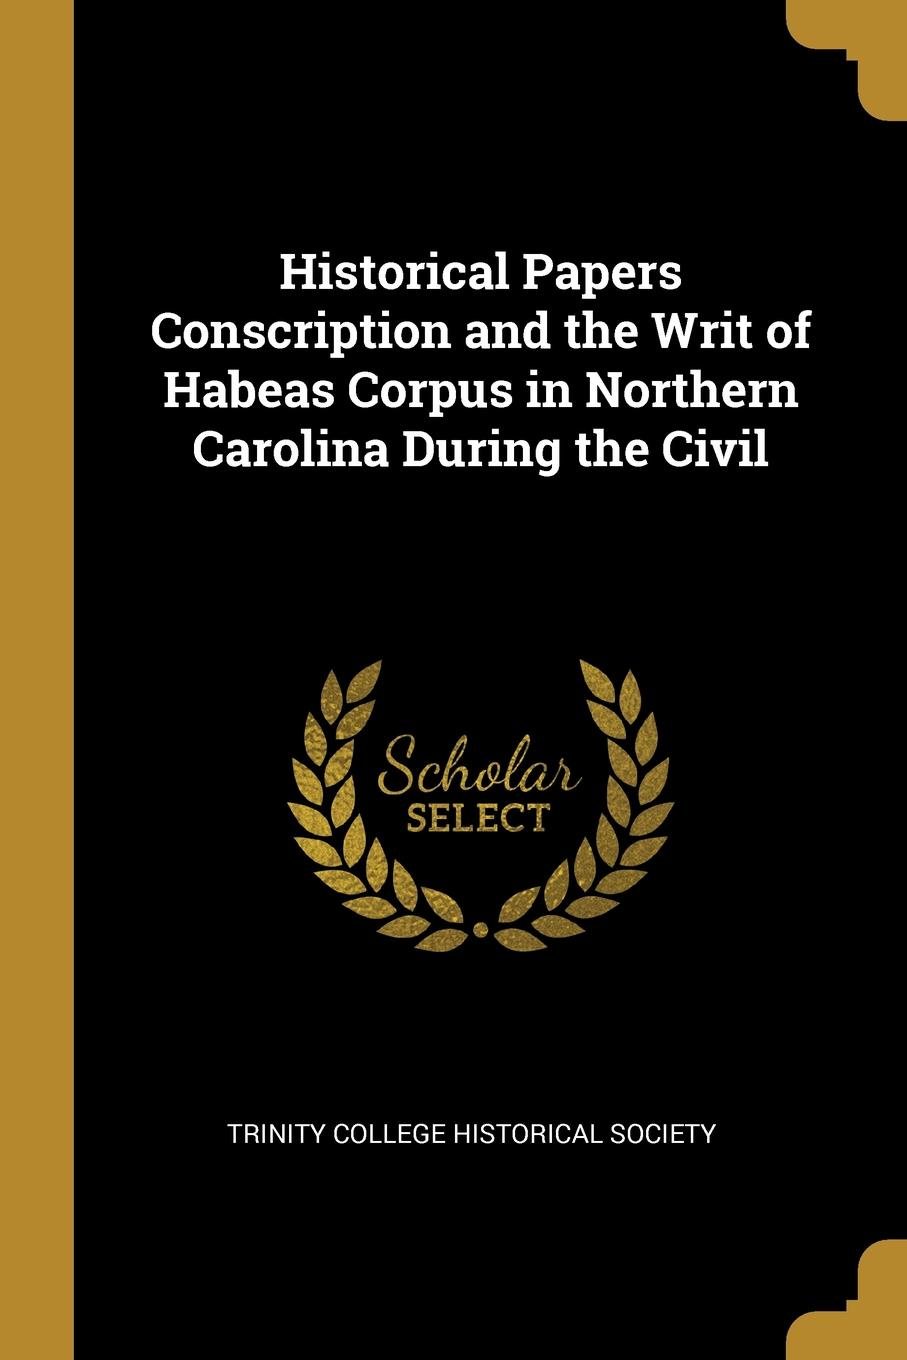 Historical Papers Conscription and the Writ of Habeas Corpus in Northern Carolina During the Civil